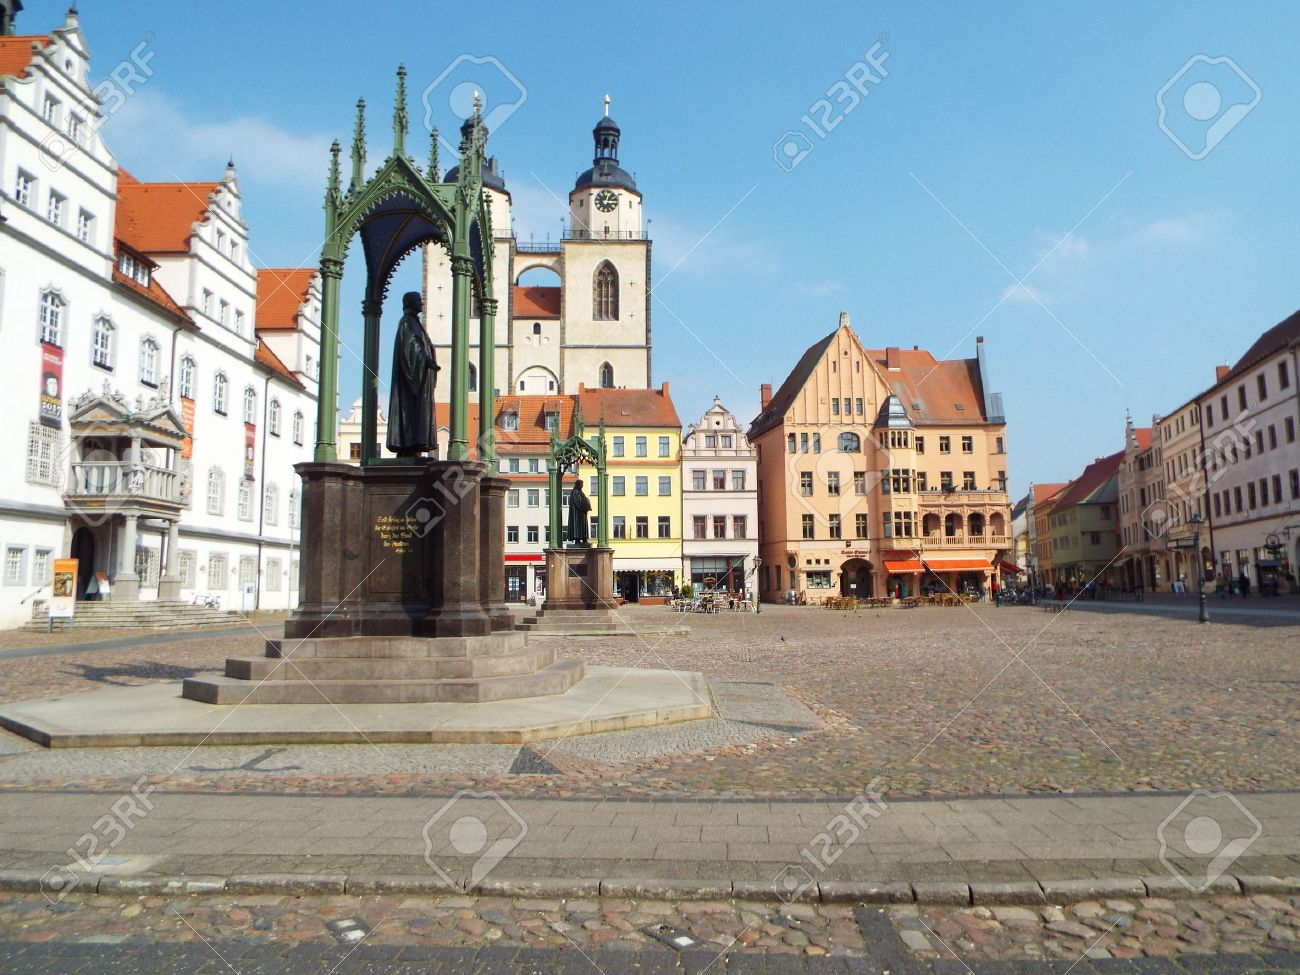 market place before the city council with the monuments of luther